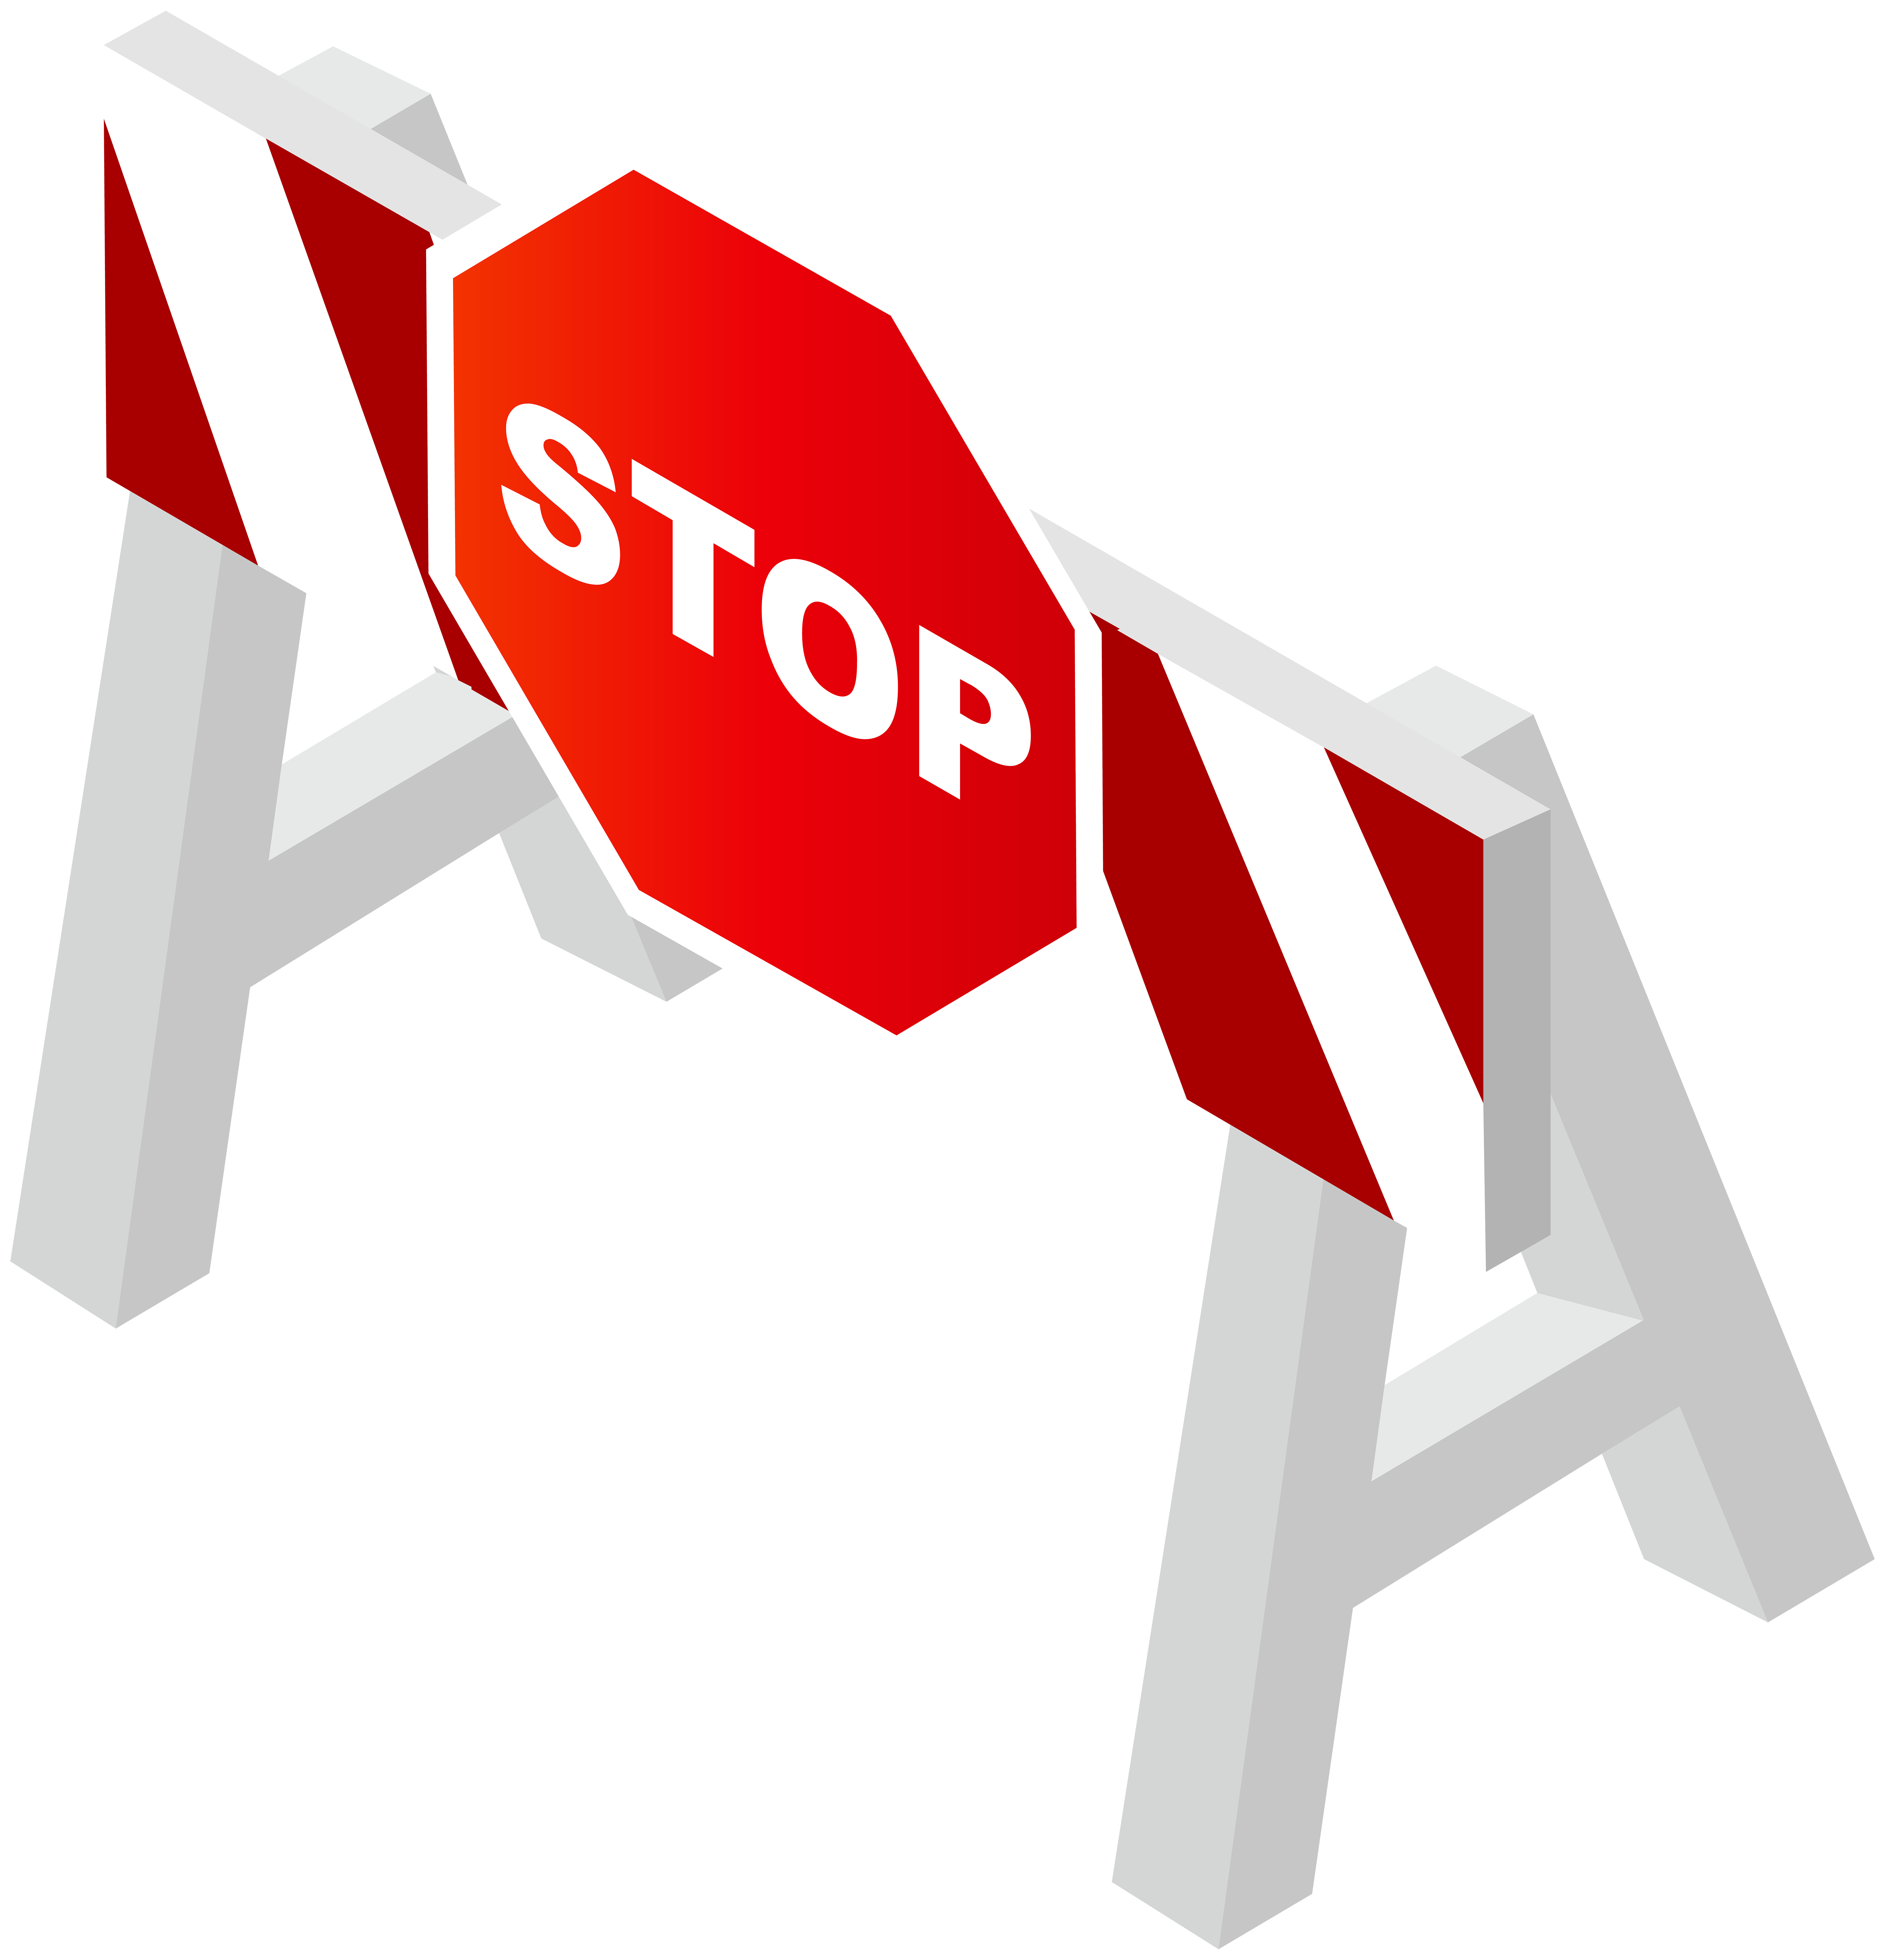 Stop clipart png. Cilpart projects inspiration road